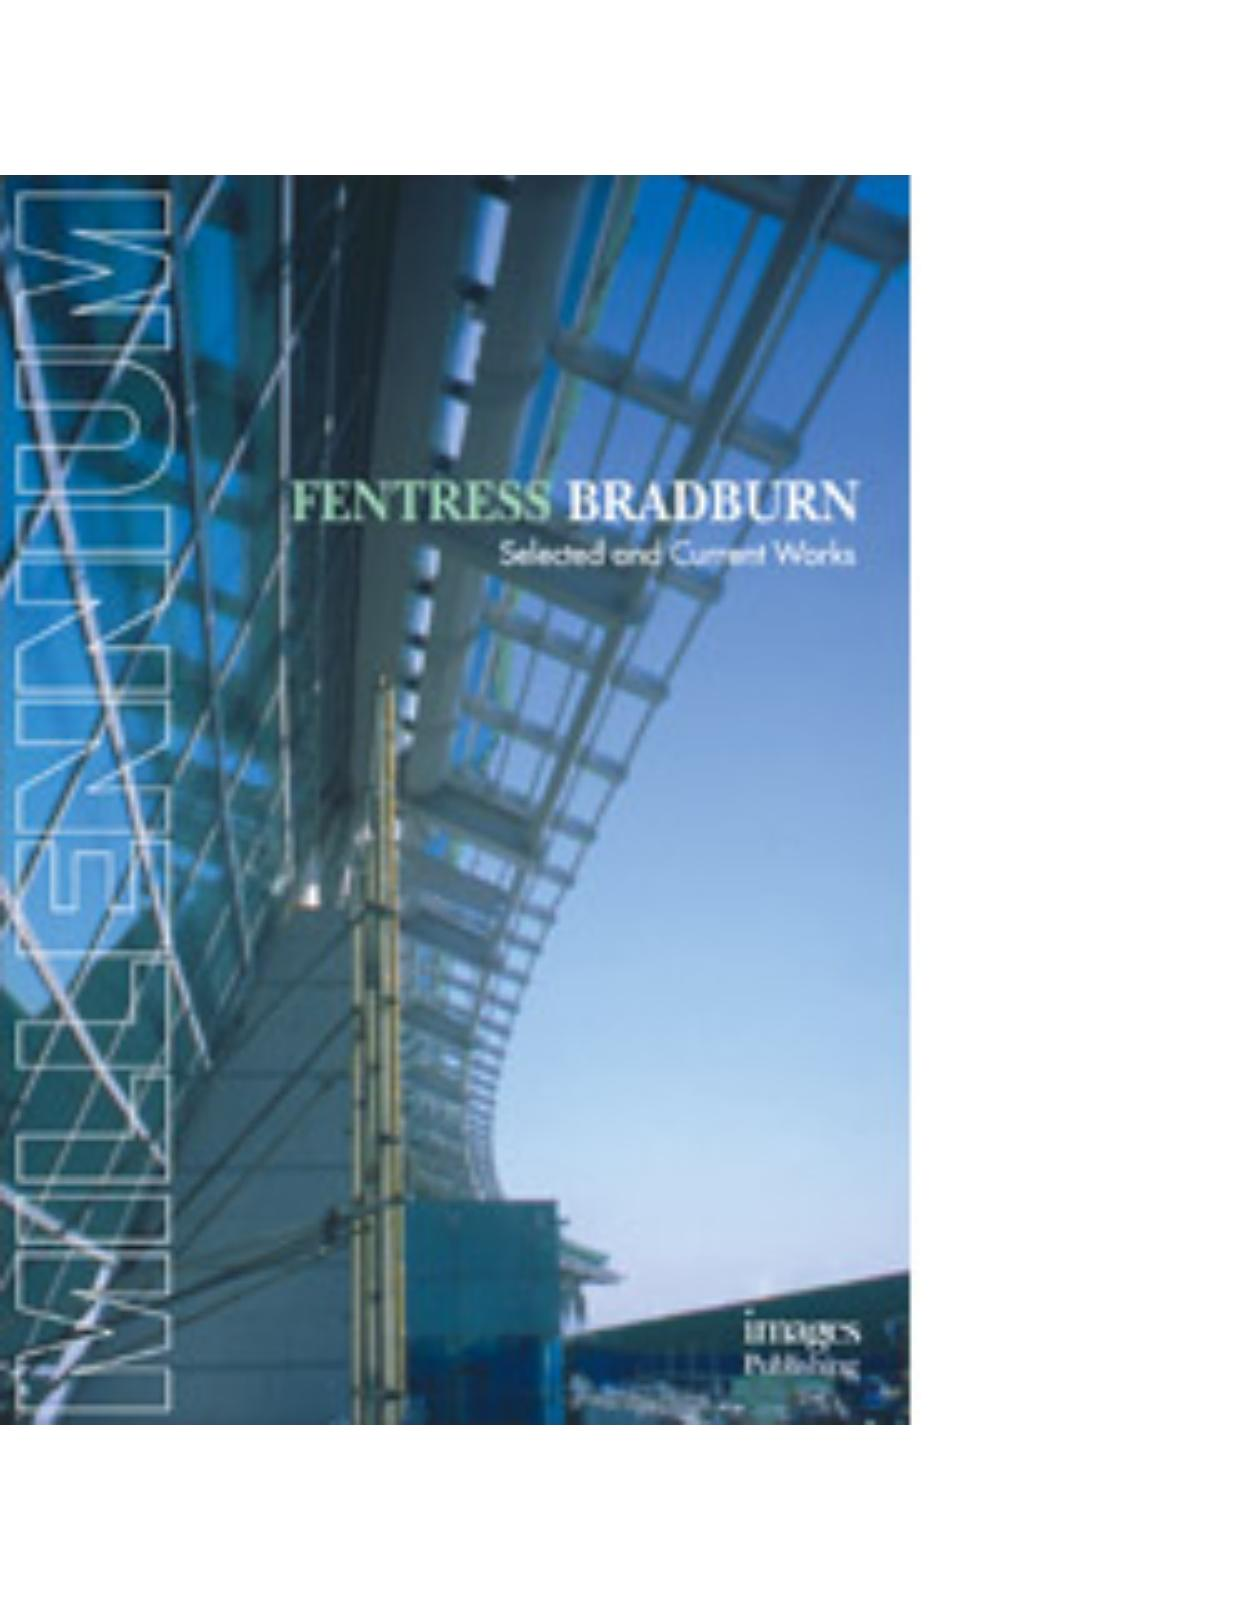 Fentress Bradburn: Selected and Current Works